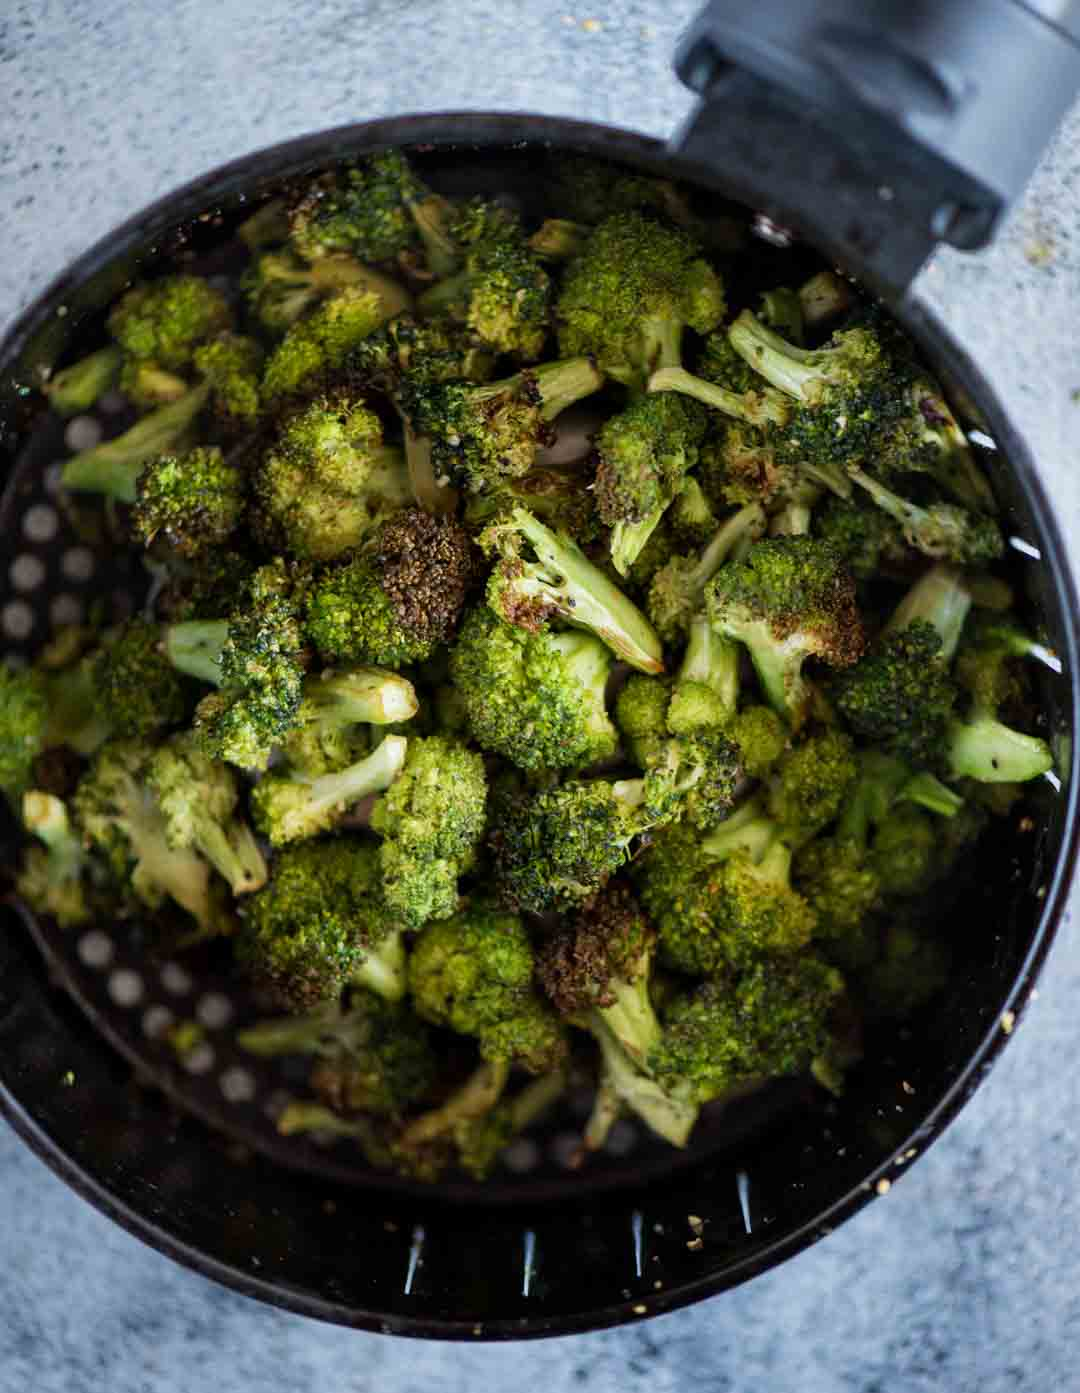 Broccoli florets are tossed in oil, garlic, salt, pepper and lemon juice and roasted in an air fryer for about 10 minutes. One of the best-roasted broccoli I would say.